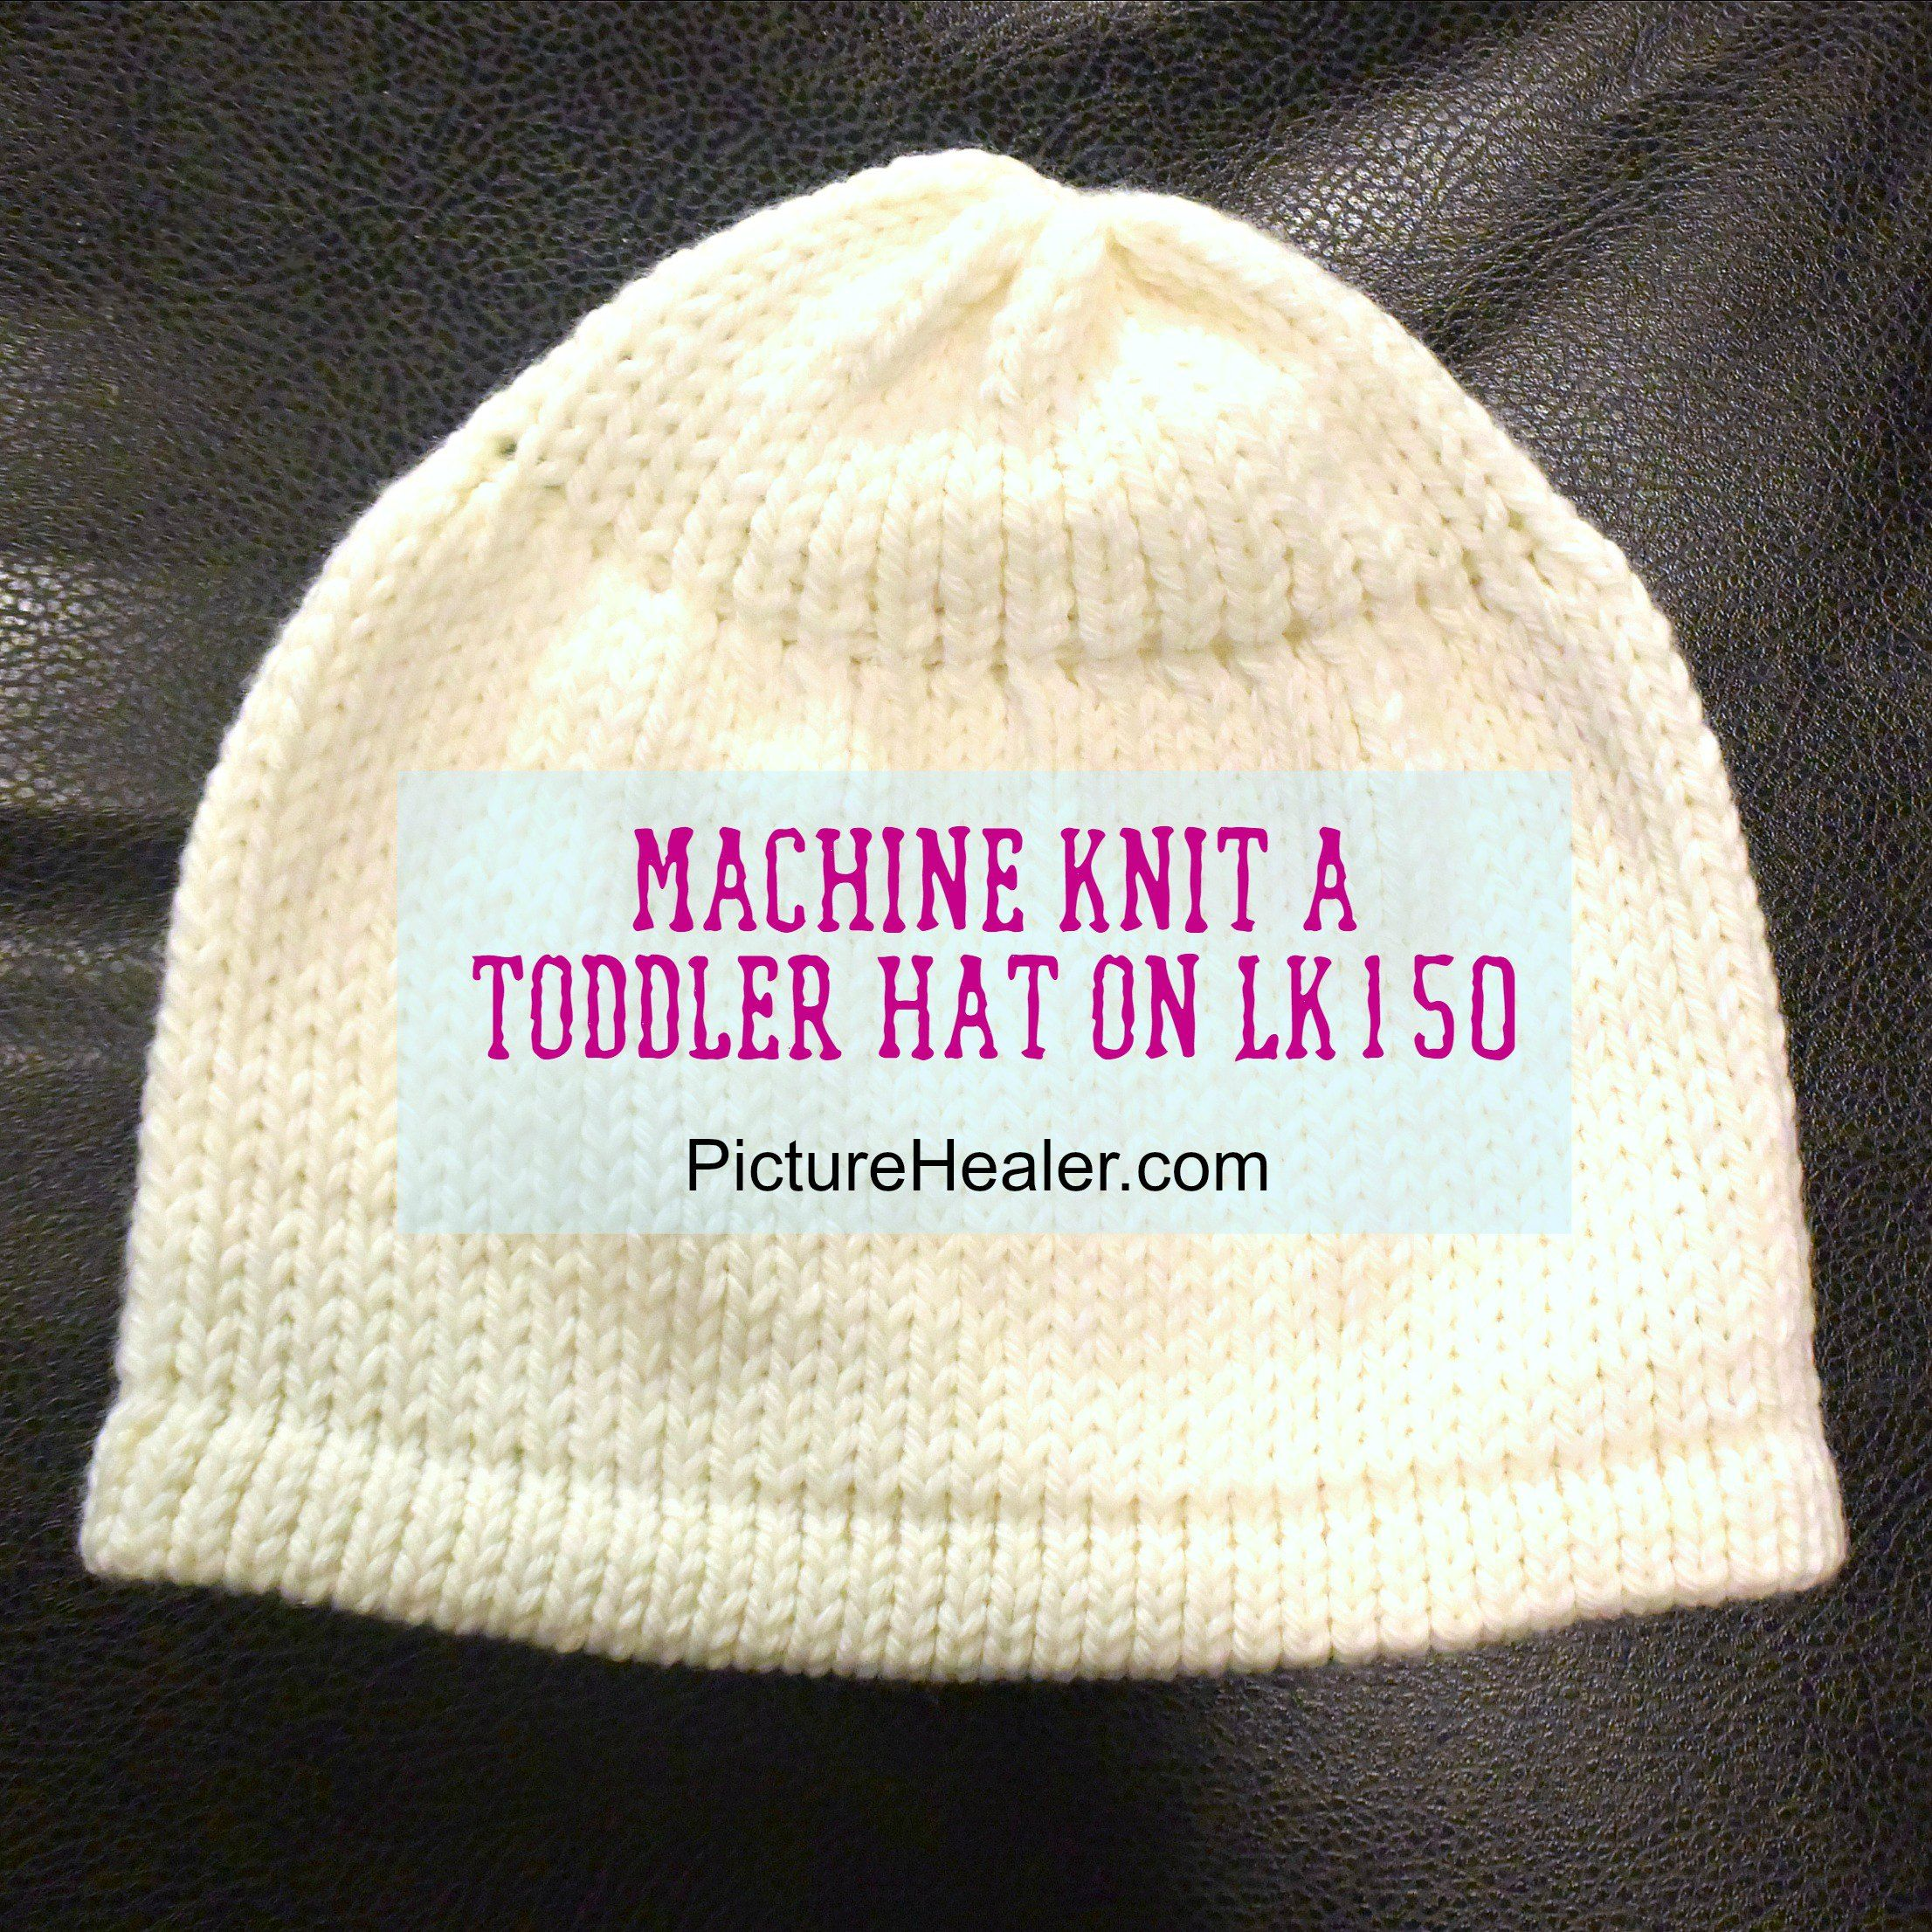 Machine Knit a Toddler Hat on LK150 | Machine Knitting - basics ...